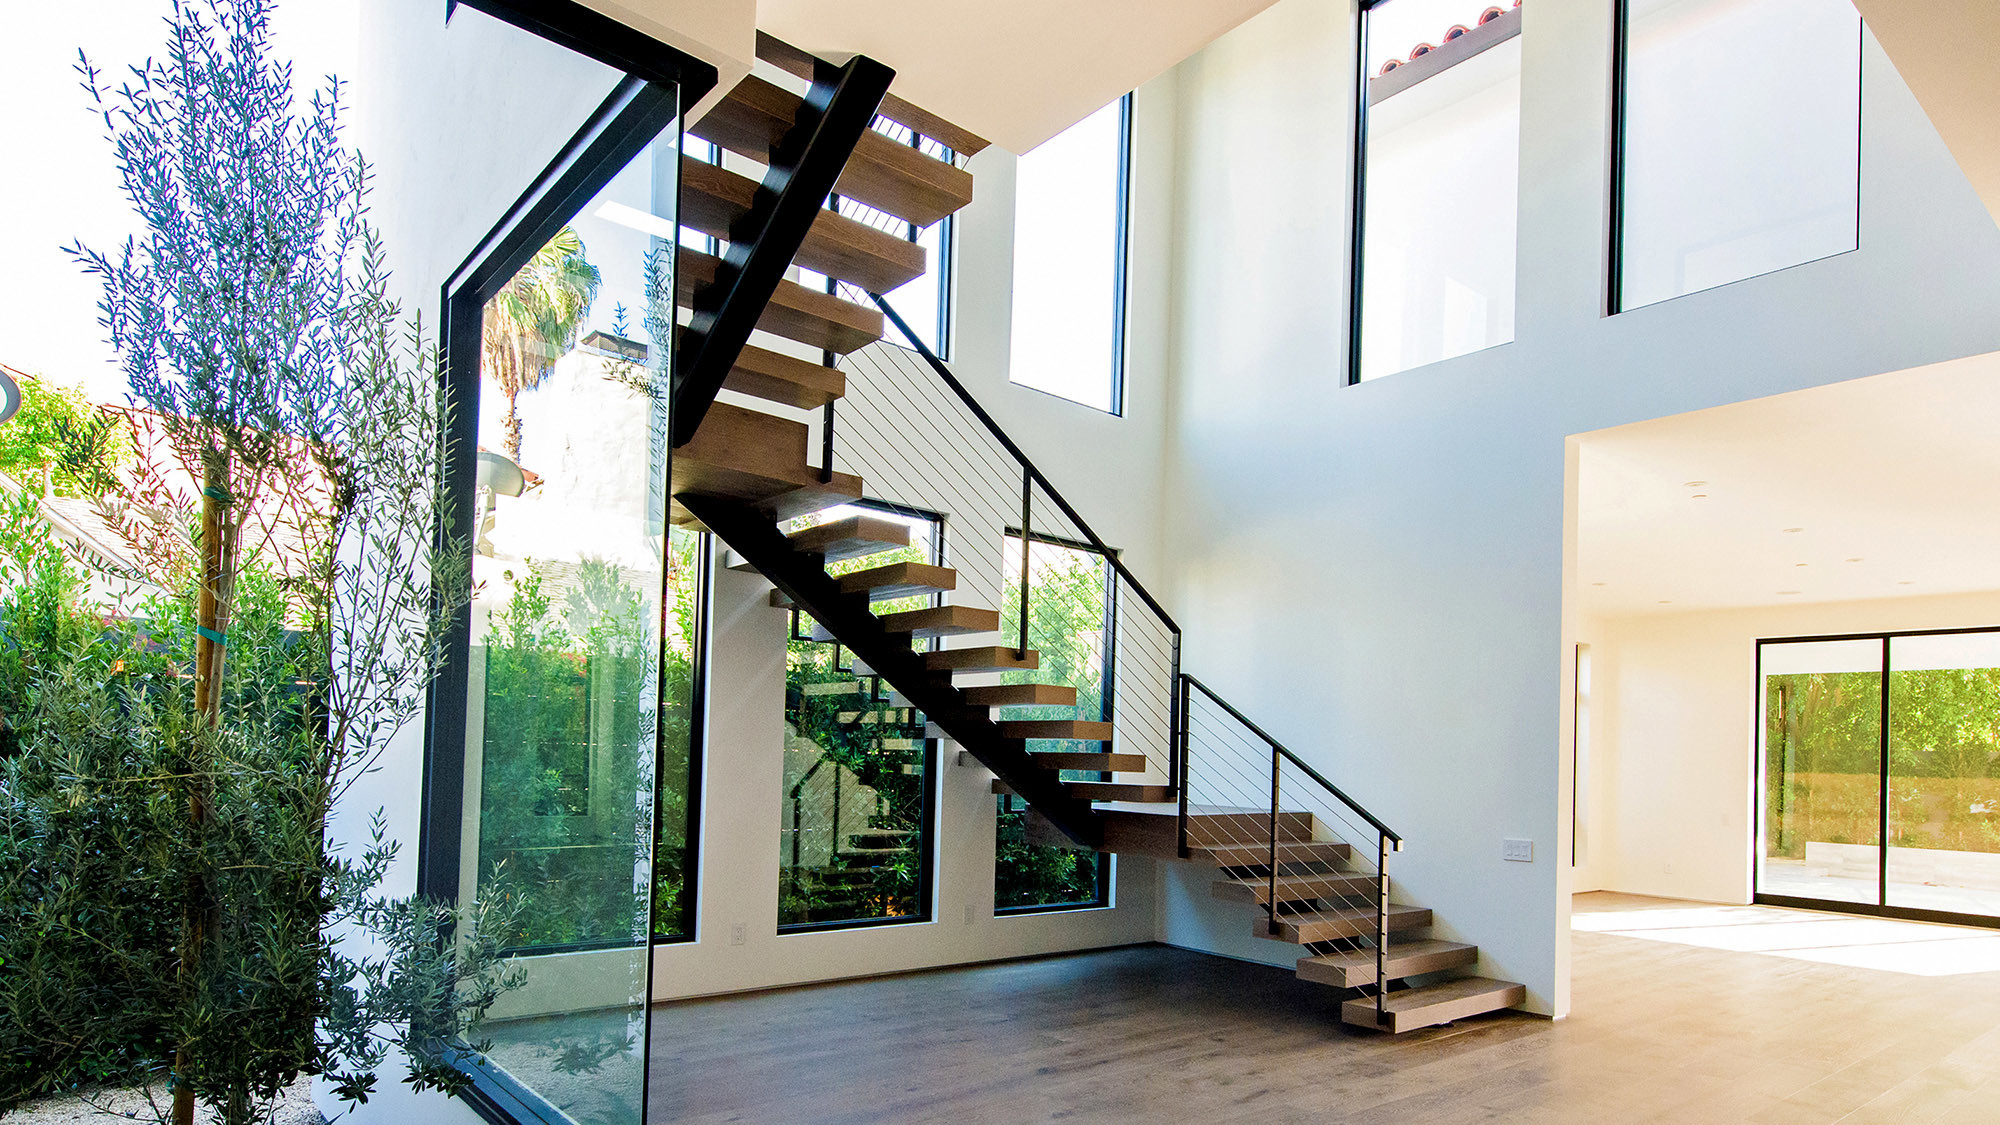 Design Floating Stairs floating staircases make their work look light and easy la times